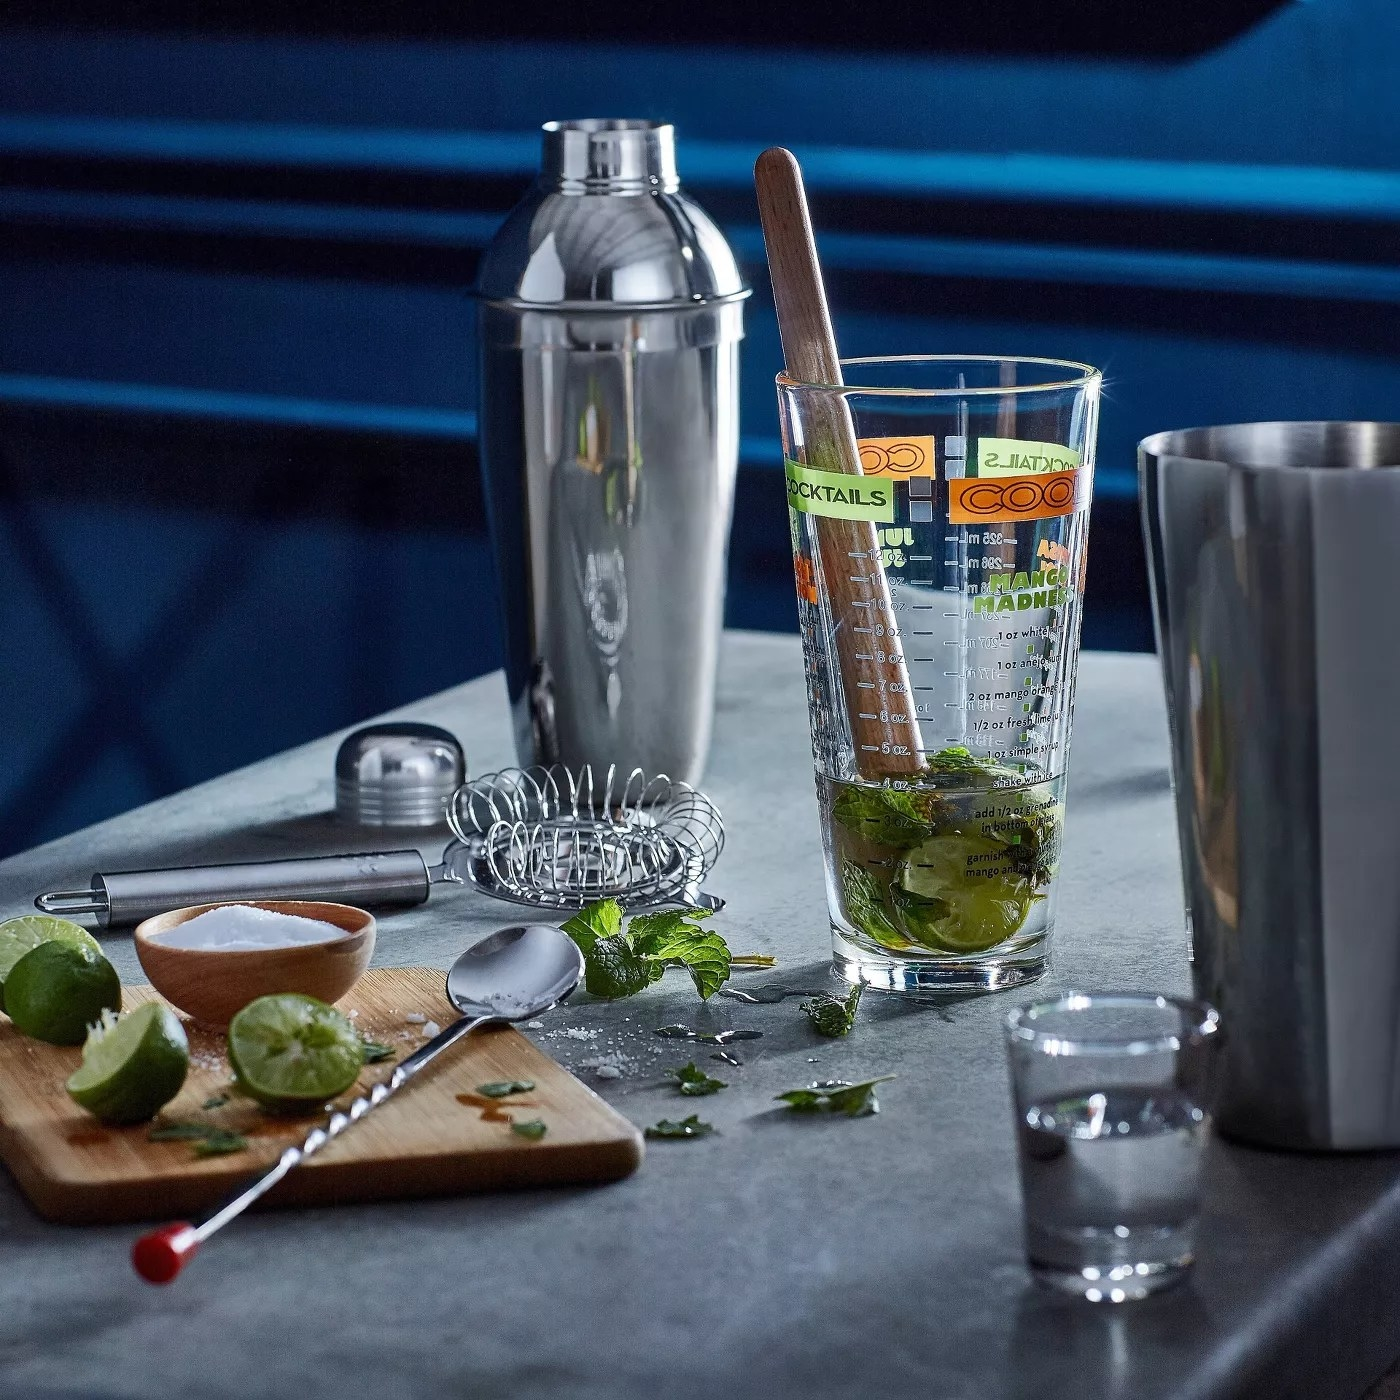 A shot glass, a glass mixing glass, a metal strainer, a bar spoon, a wooden muddler, a metal shaker base, and a metal boston shaker